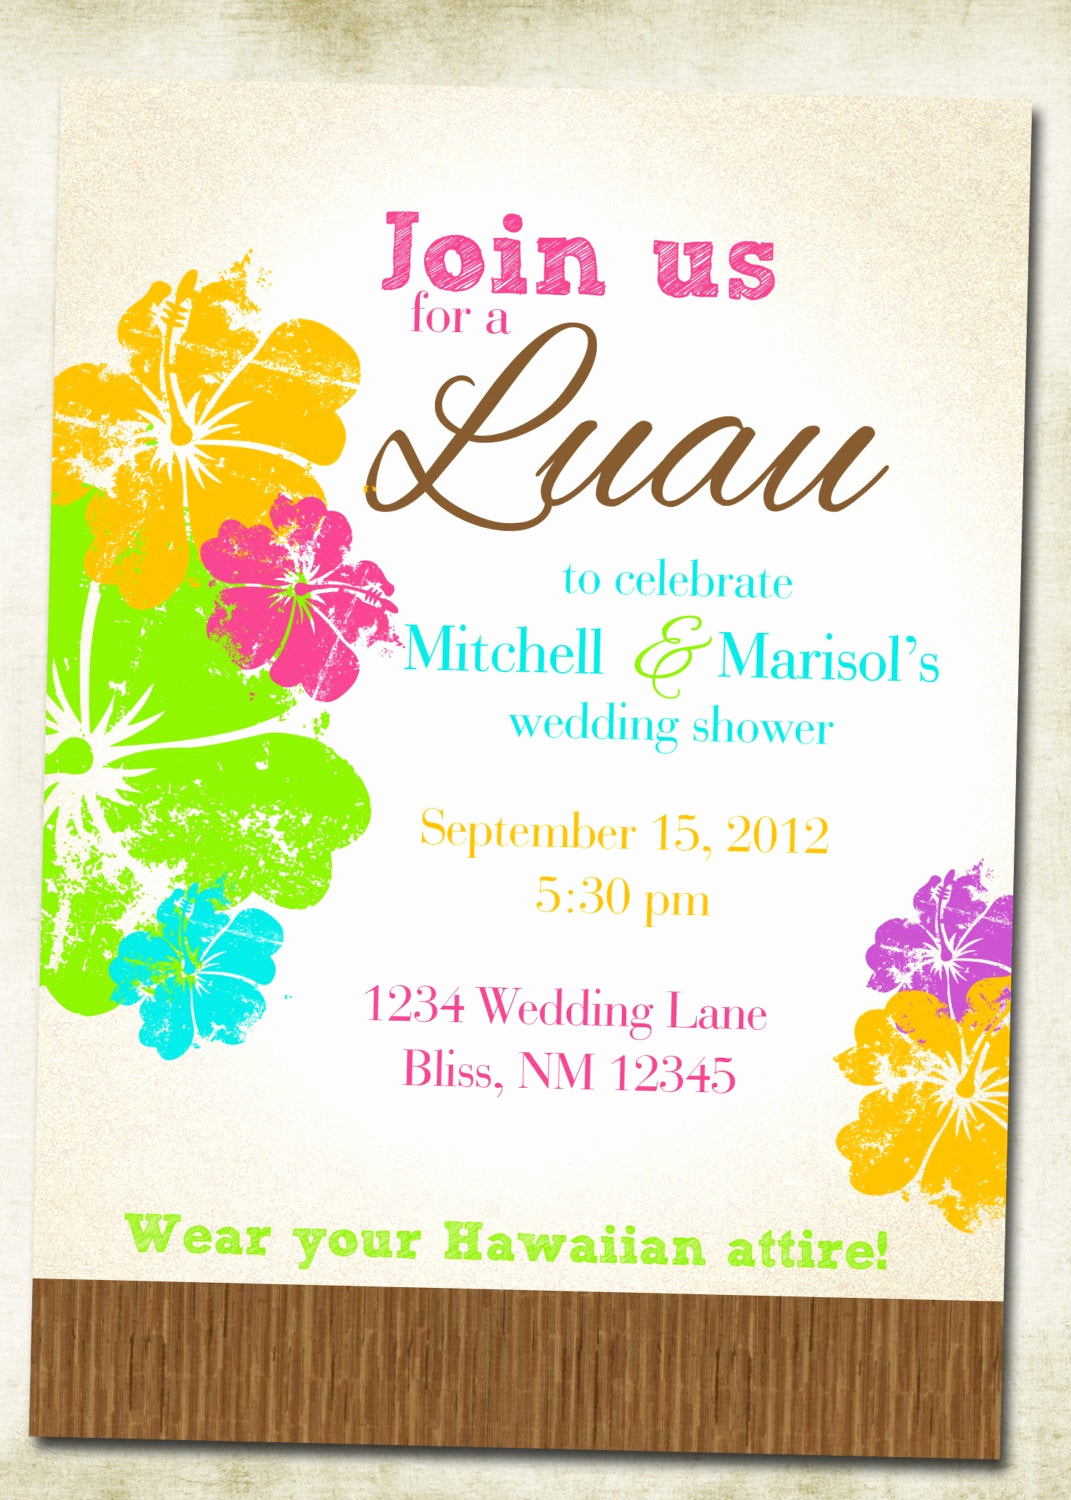 Luau Birthday Invitation Wording Elegant Luau Hawaiian themed Invitation